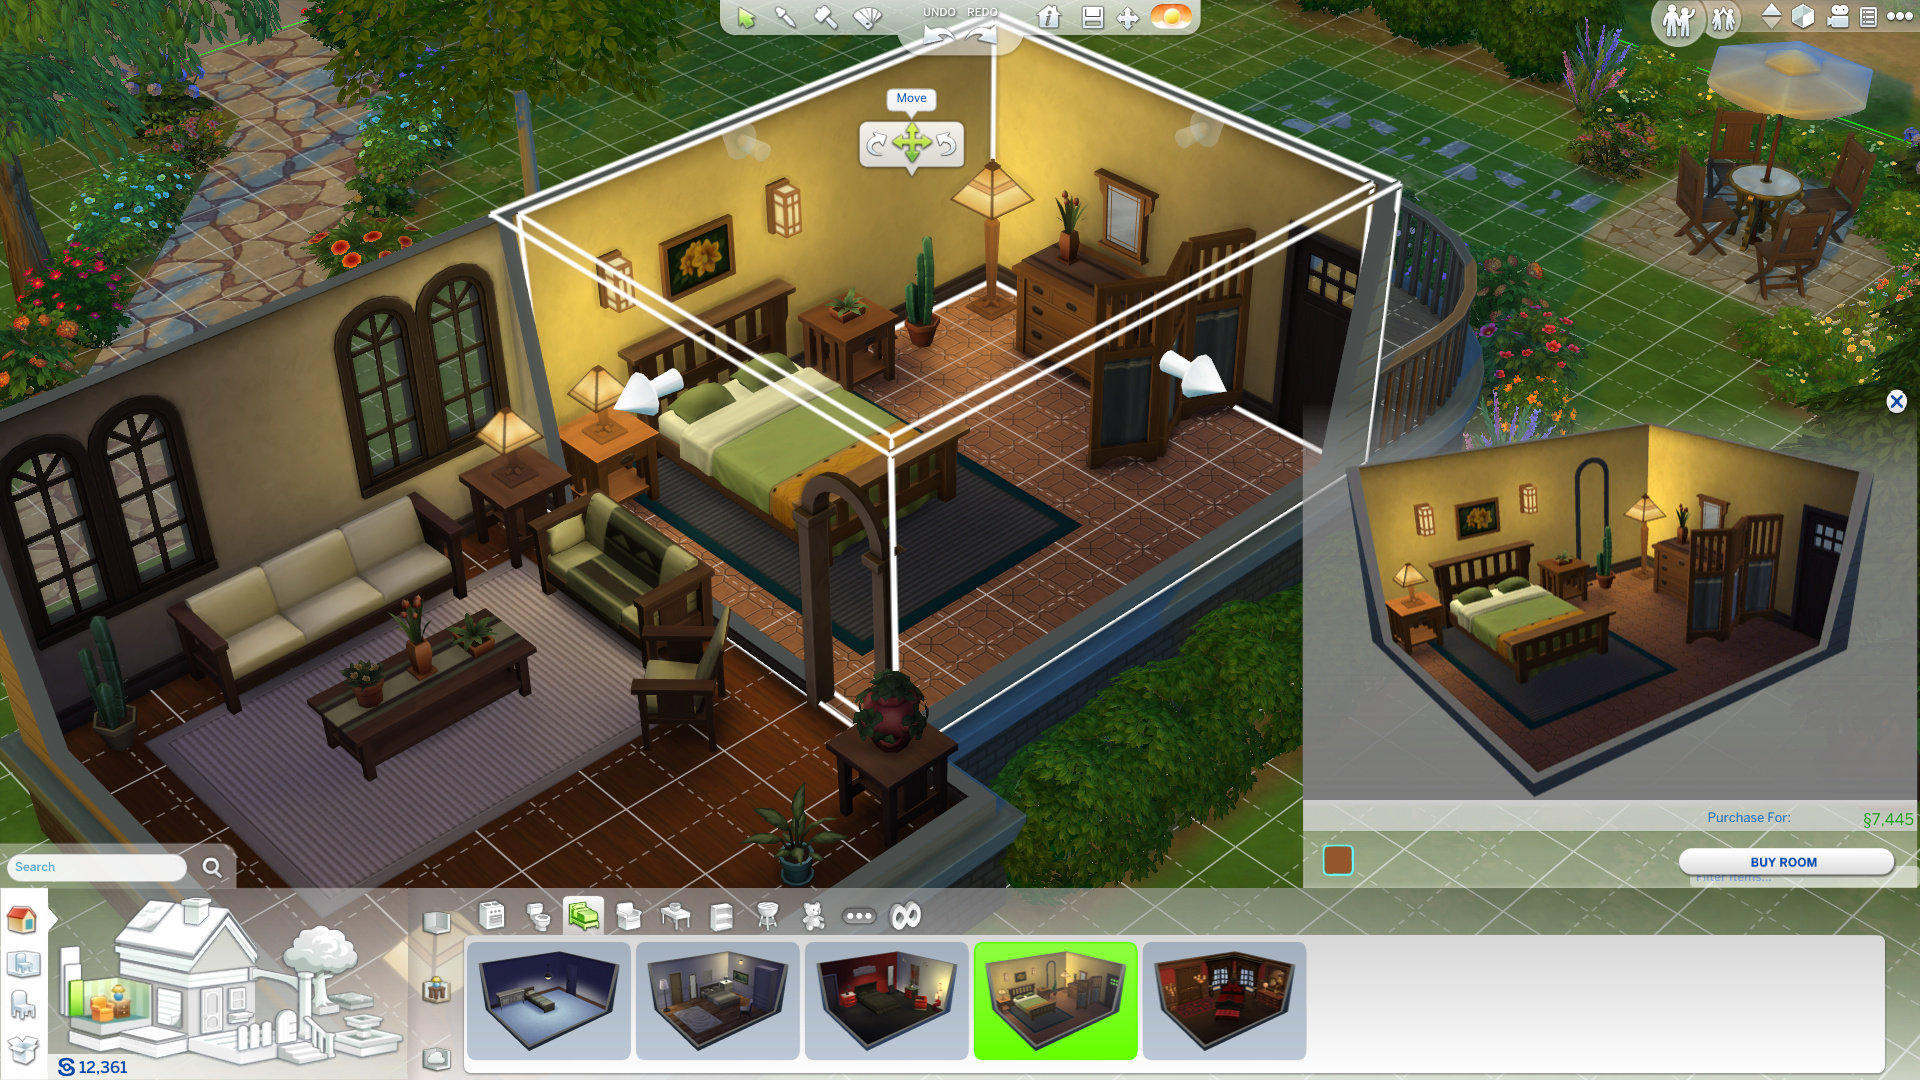 The Sims' building mode